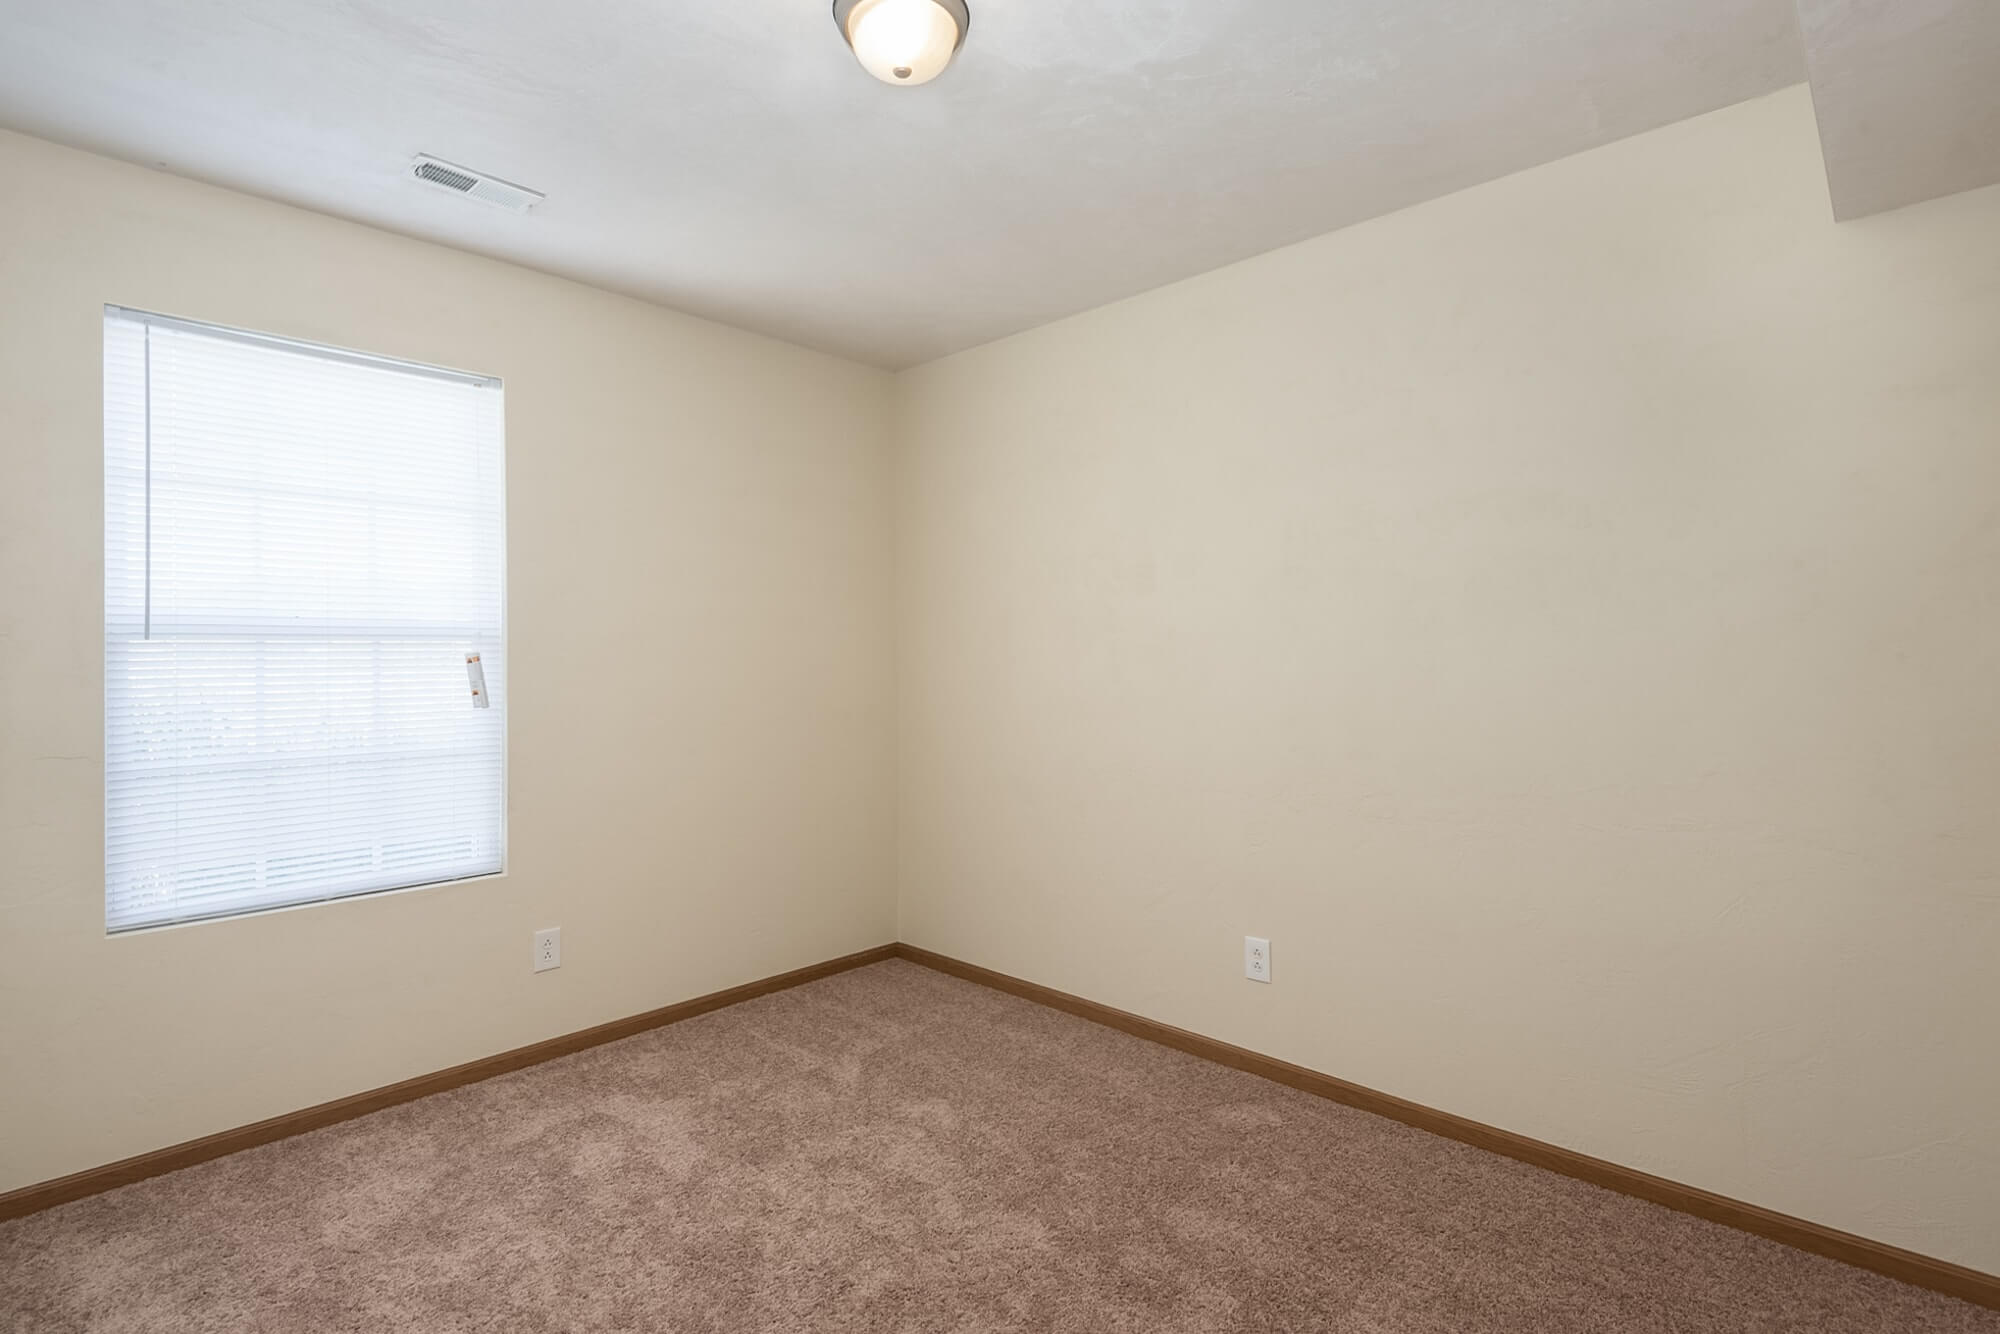 Two Bedroom Apartments Near McKendree University